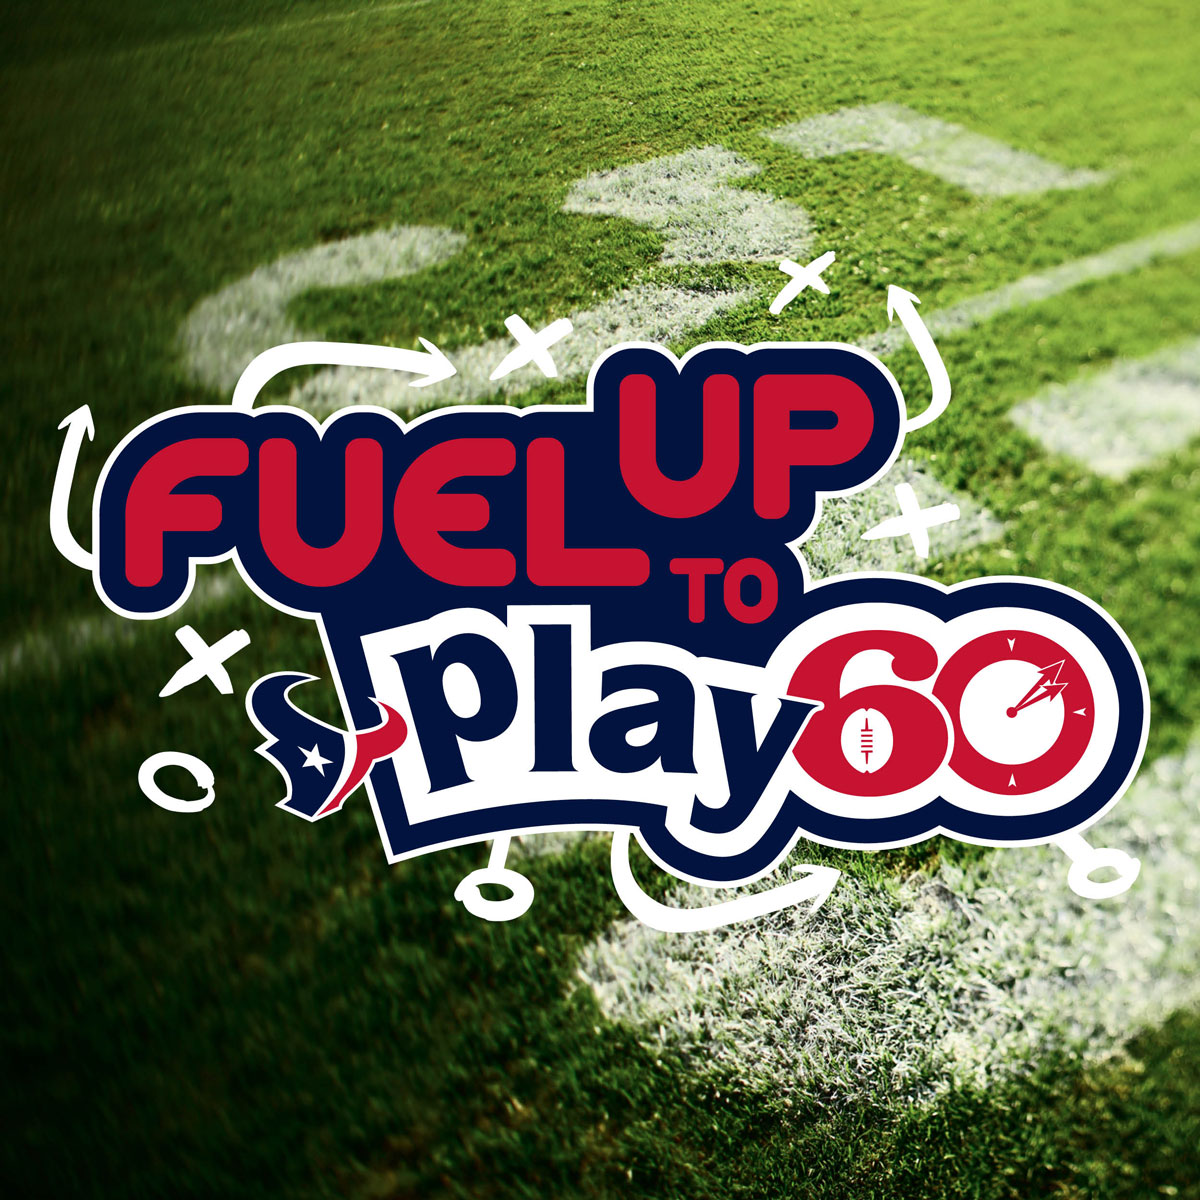 texans fuel up to play 60 logo